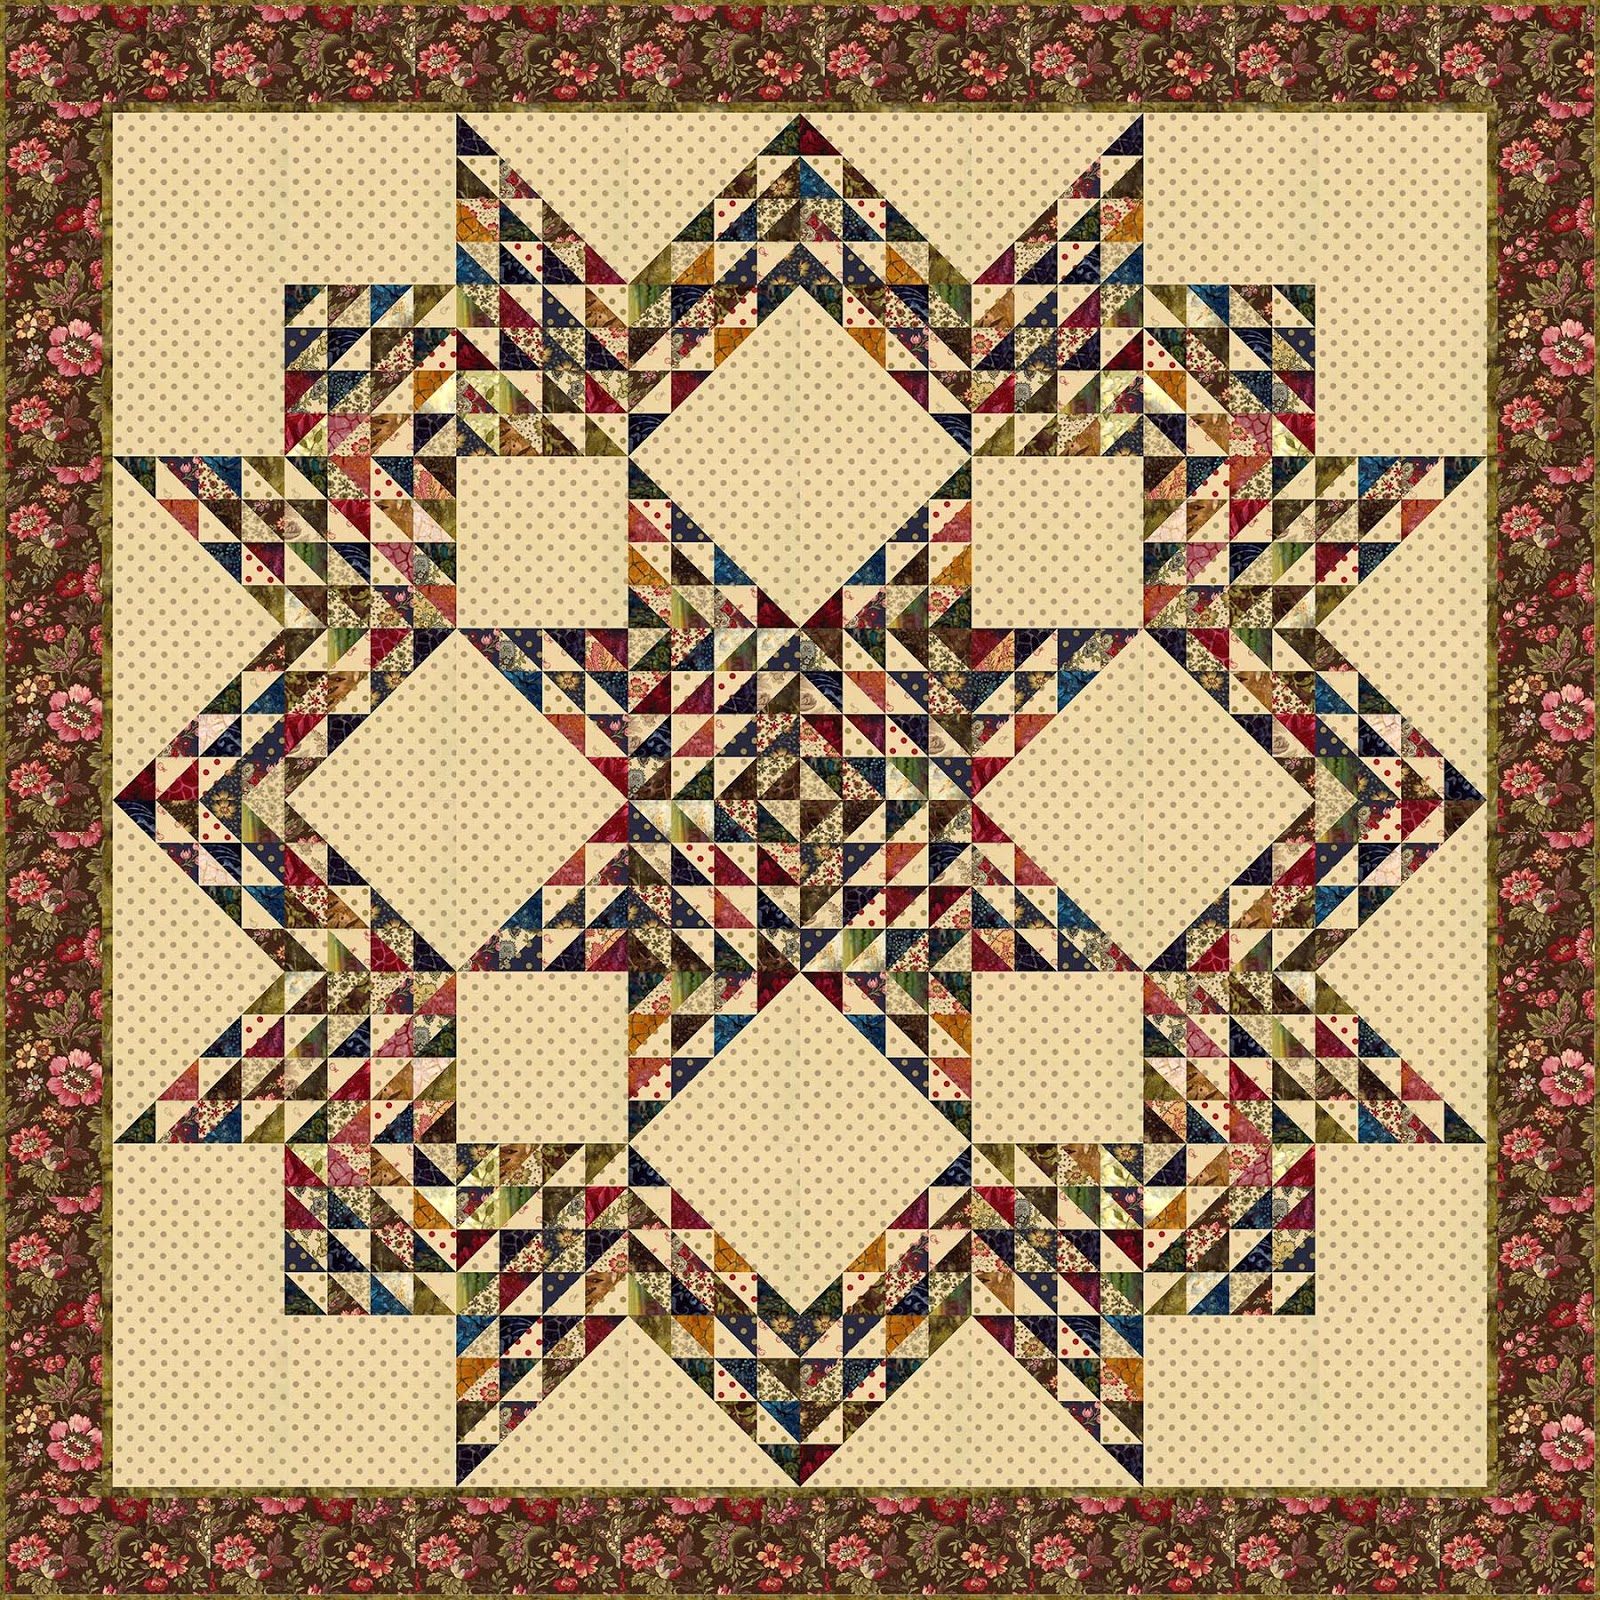 Quilting Patterns For Triangles : Moda... the Cutting Table: Afraid of Applique? Edyta Sitar Offers a Solution